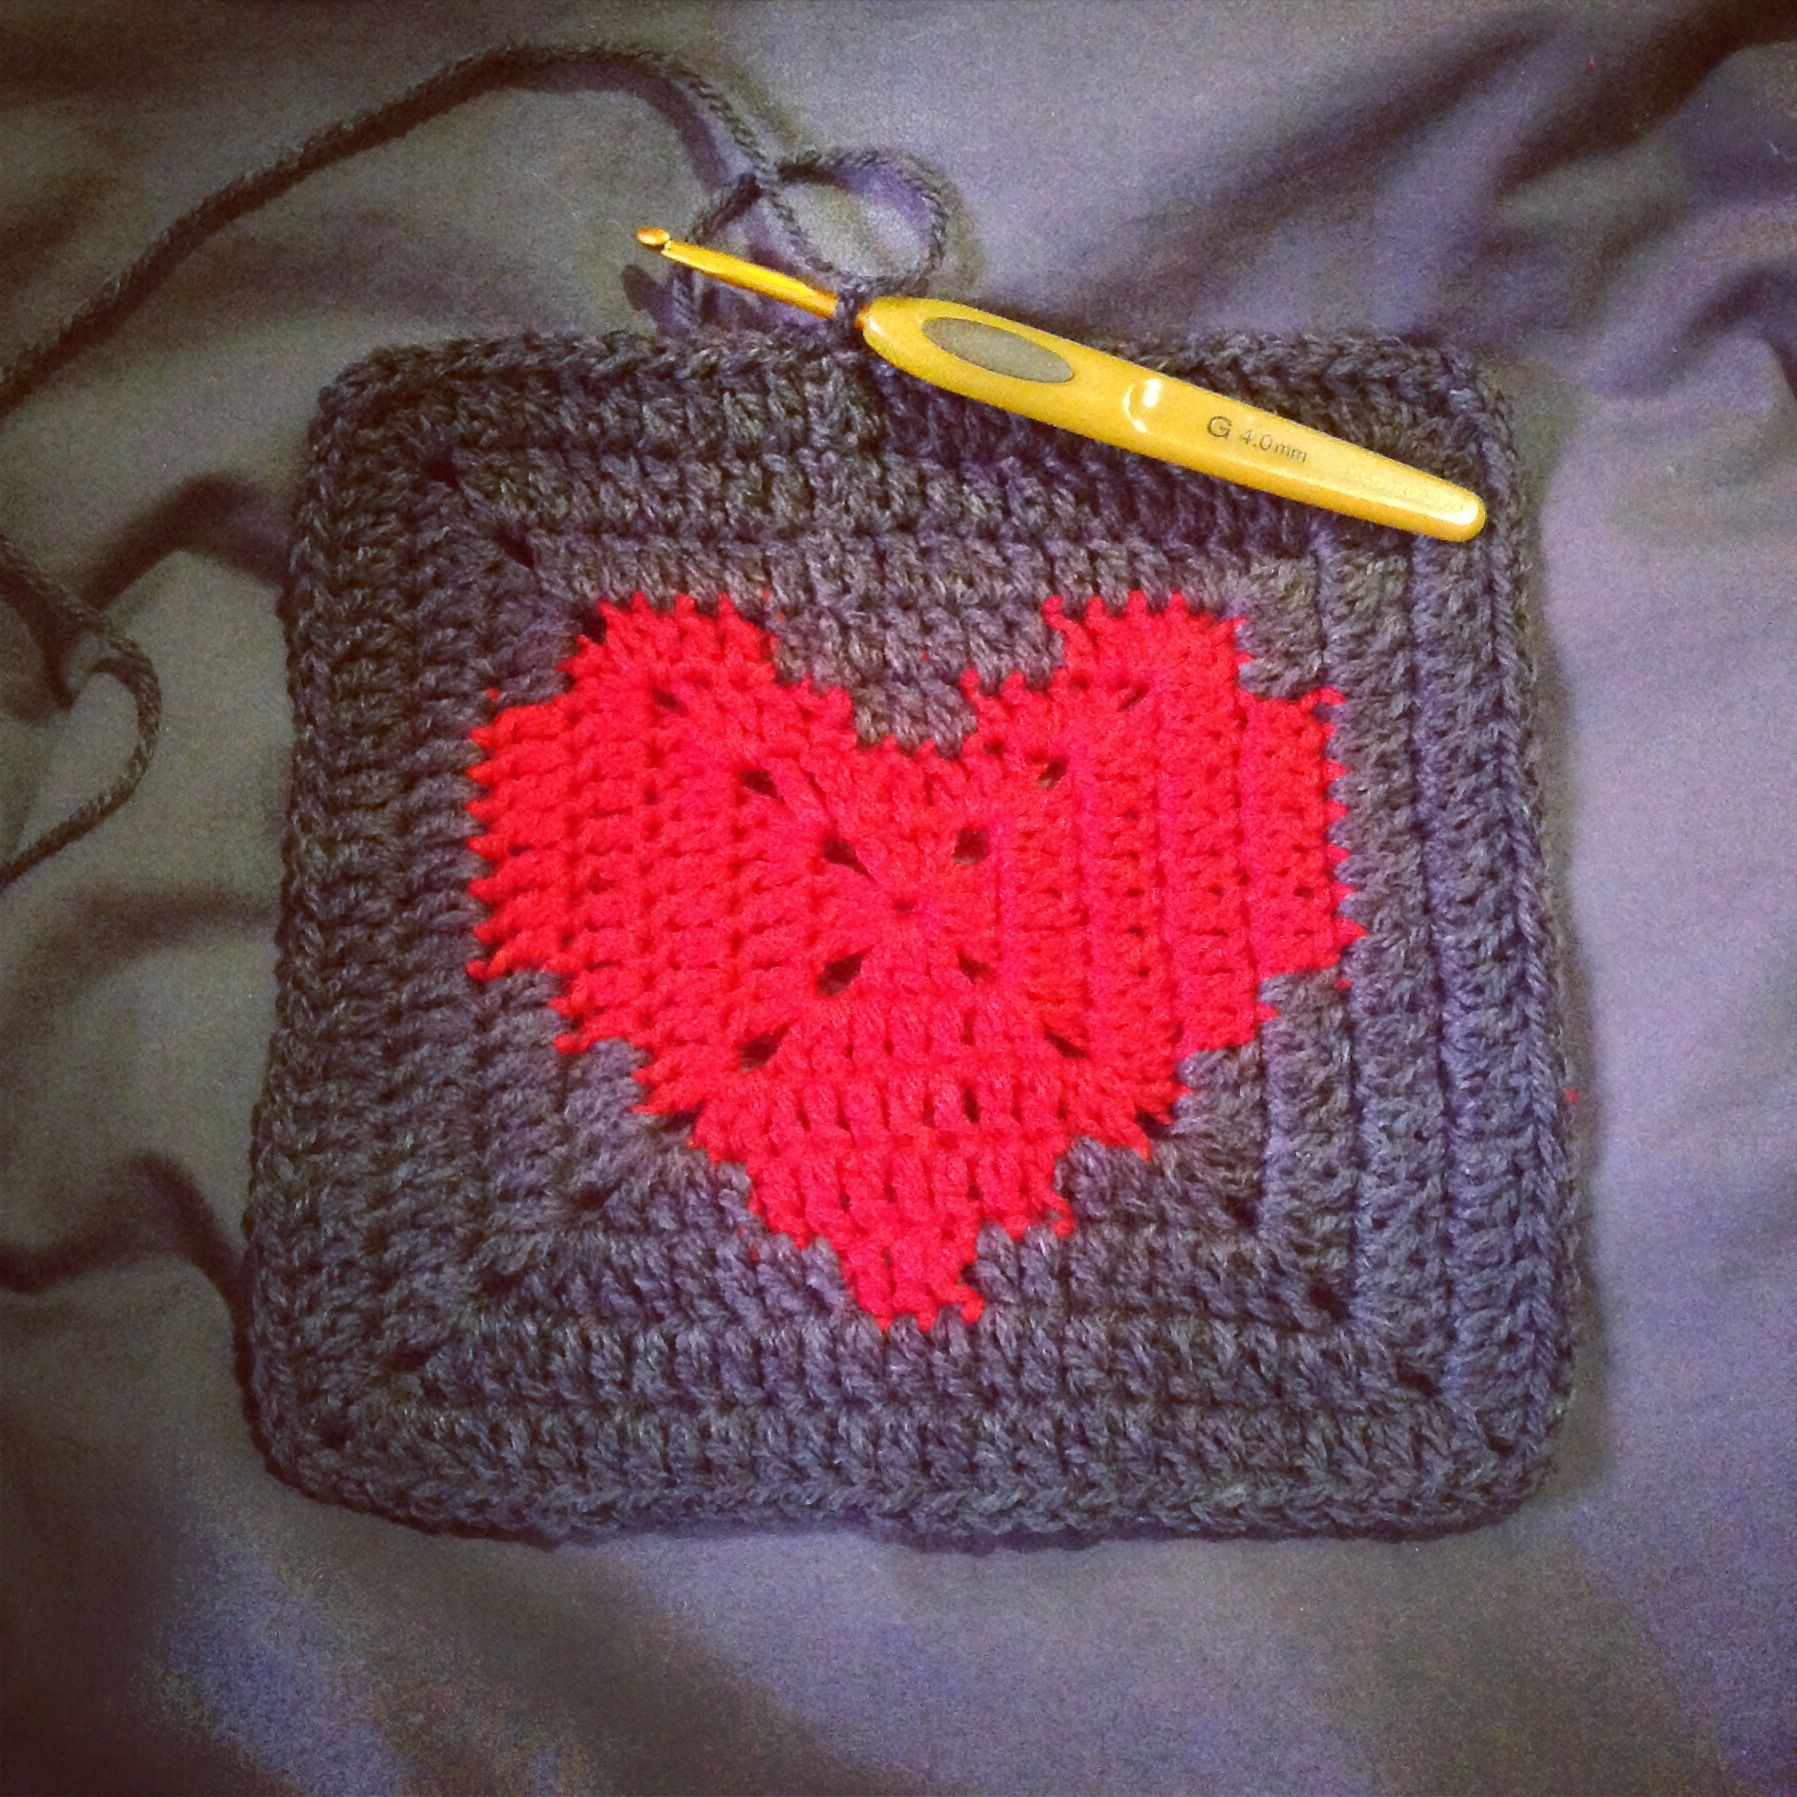 How to tie a square crochet motif, diagrams and a detailed description of the knitting of openwork squares